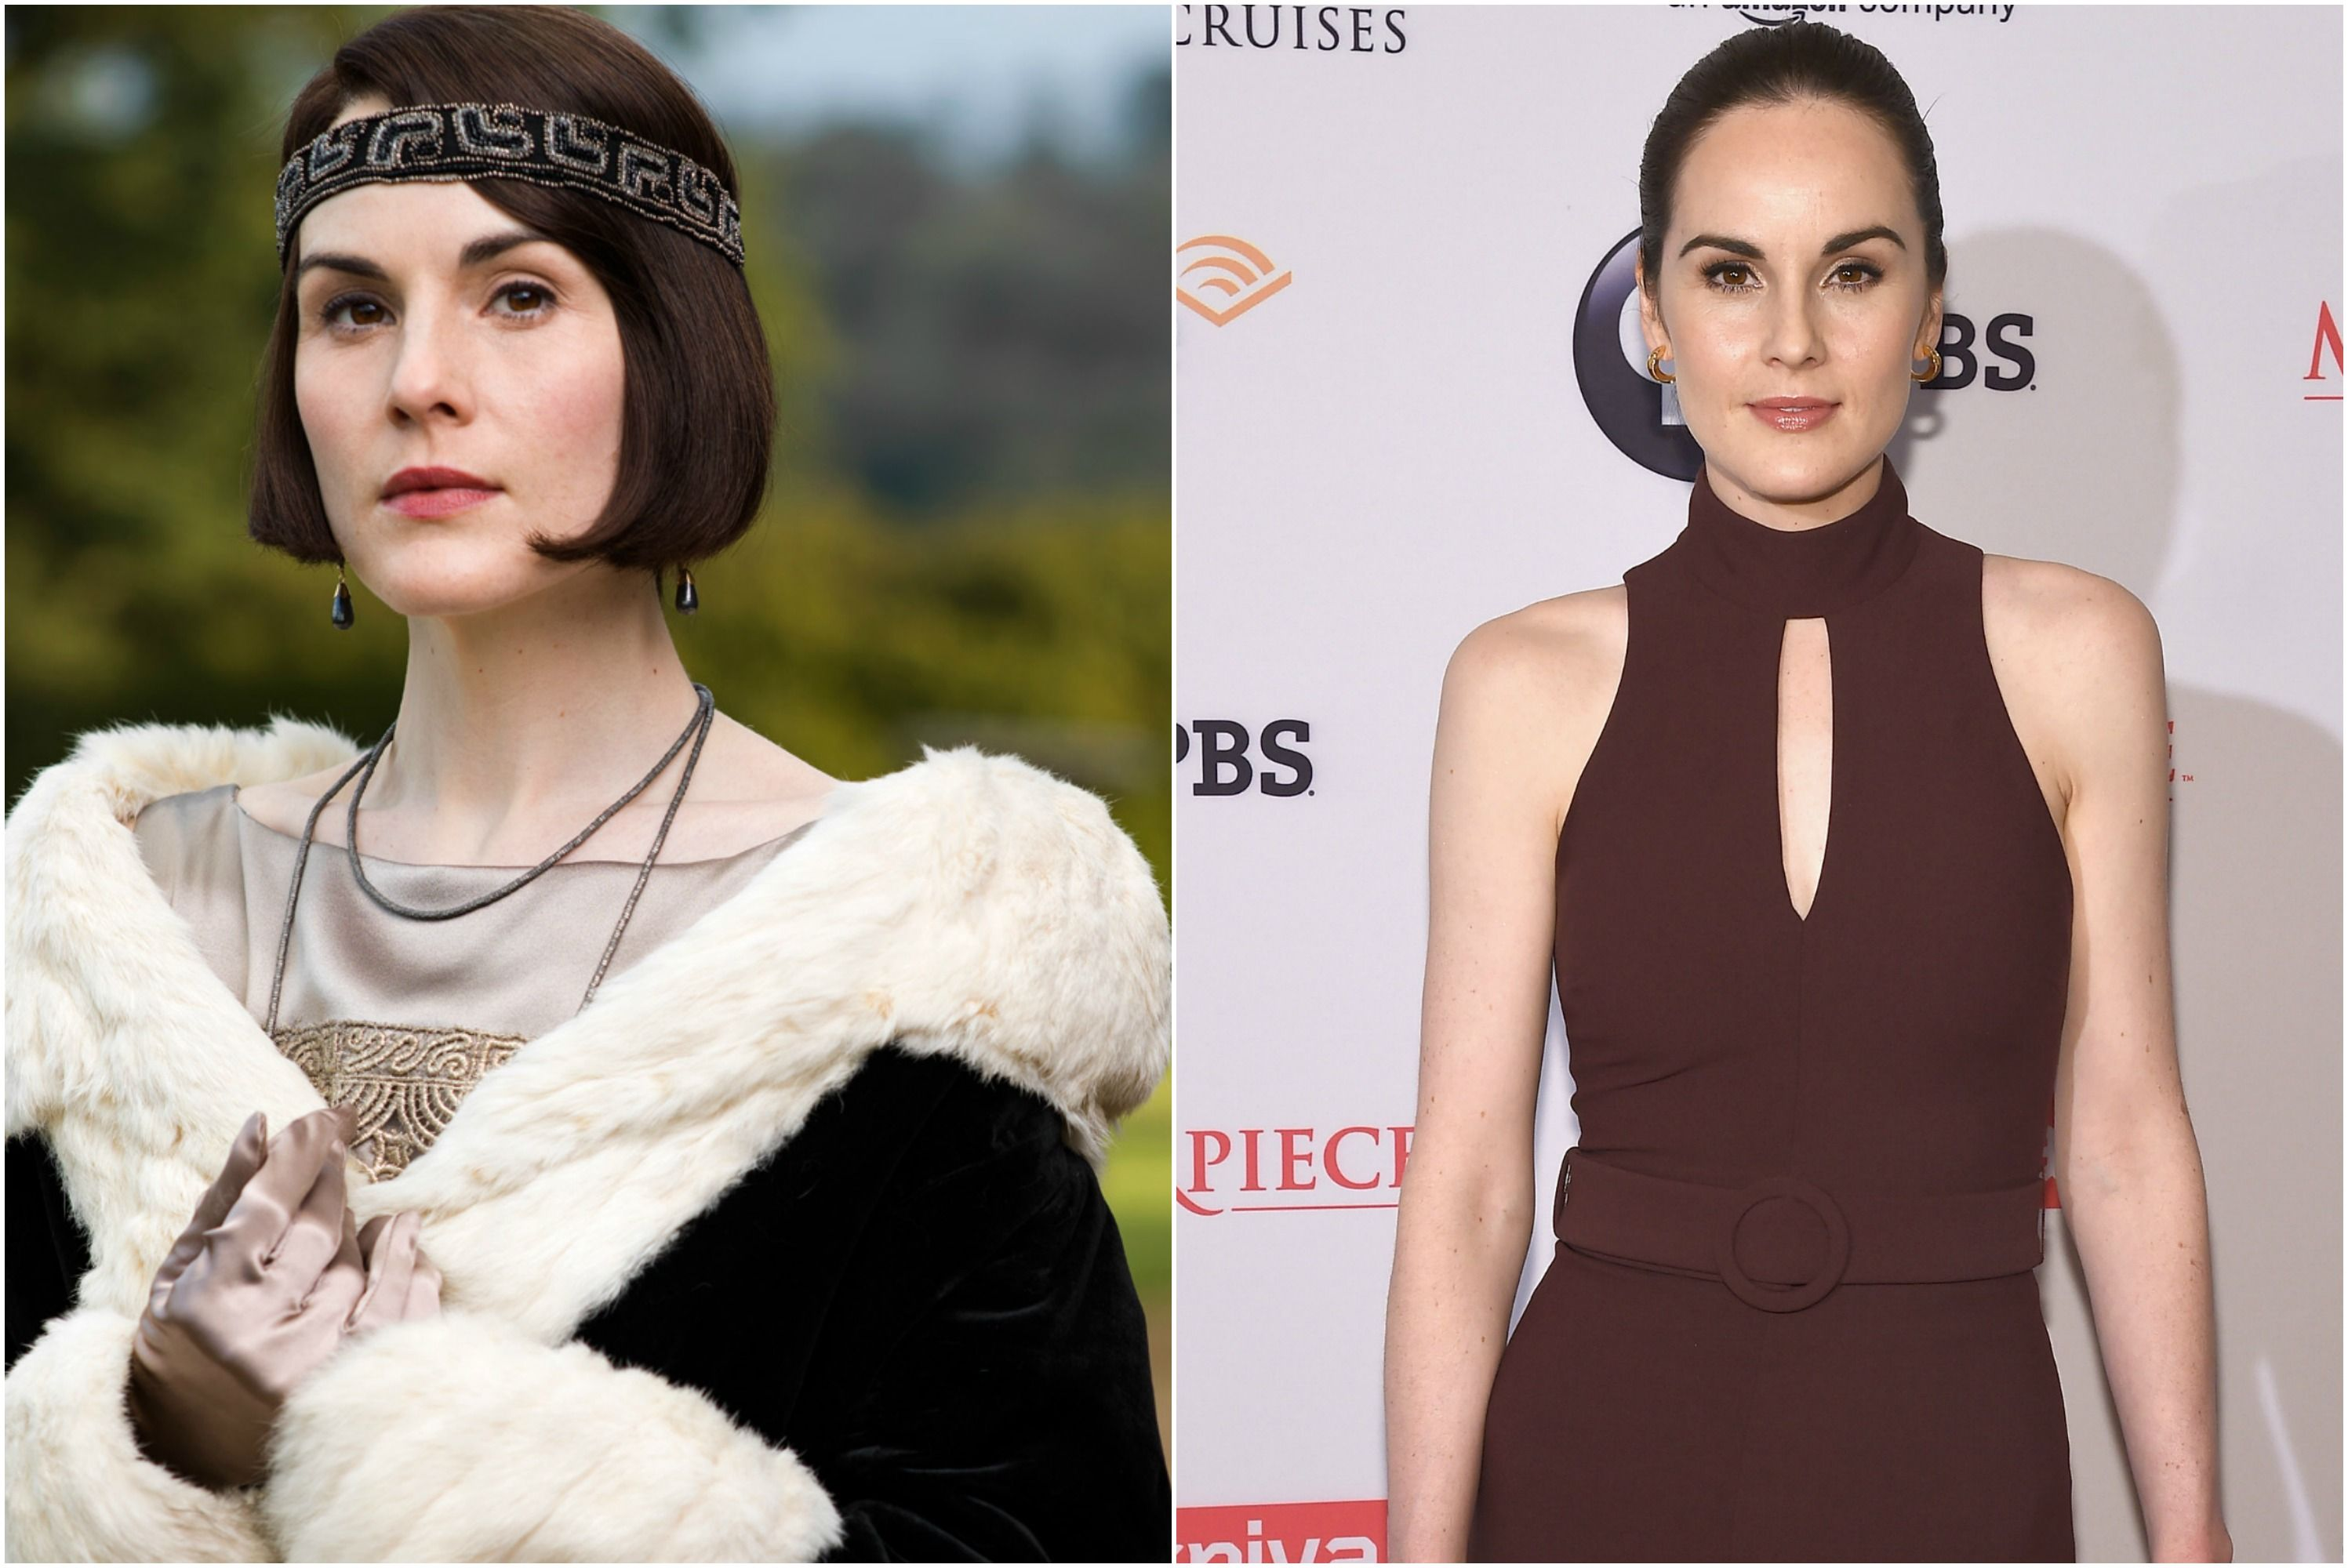 What the Cast of Downton Abbey Looks Like Not in Costume